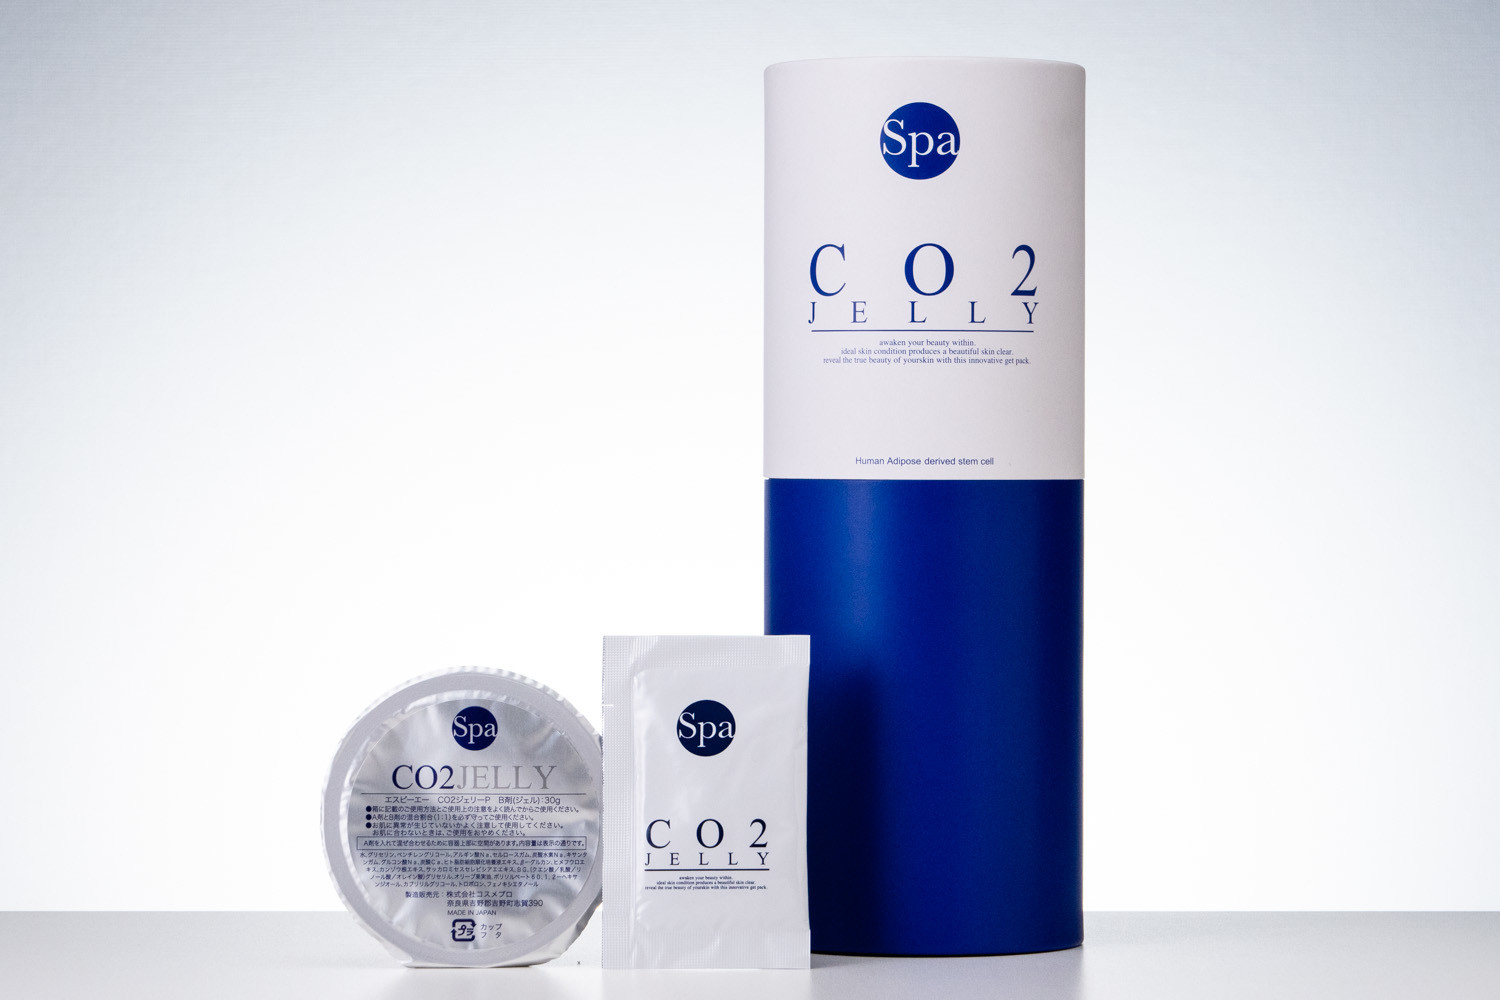 SPA CO2 Jelly Mask Pack